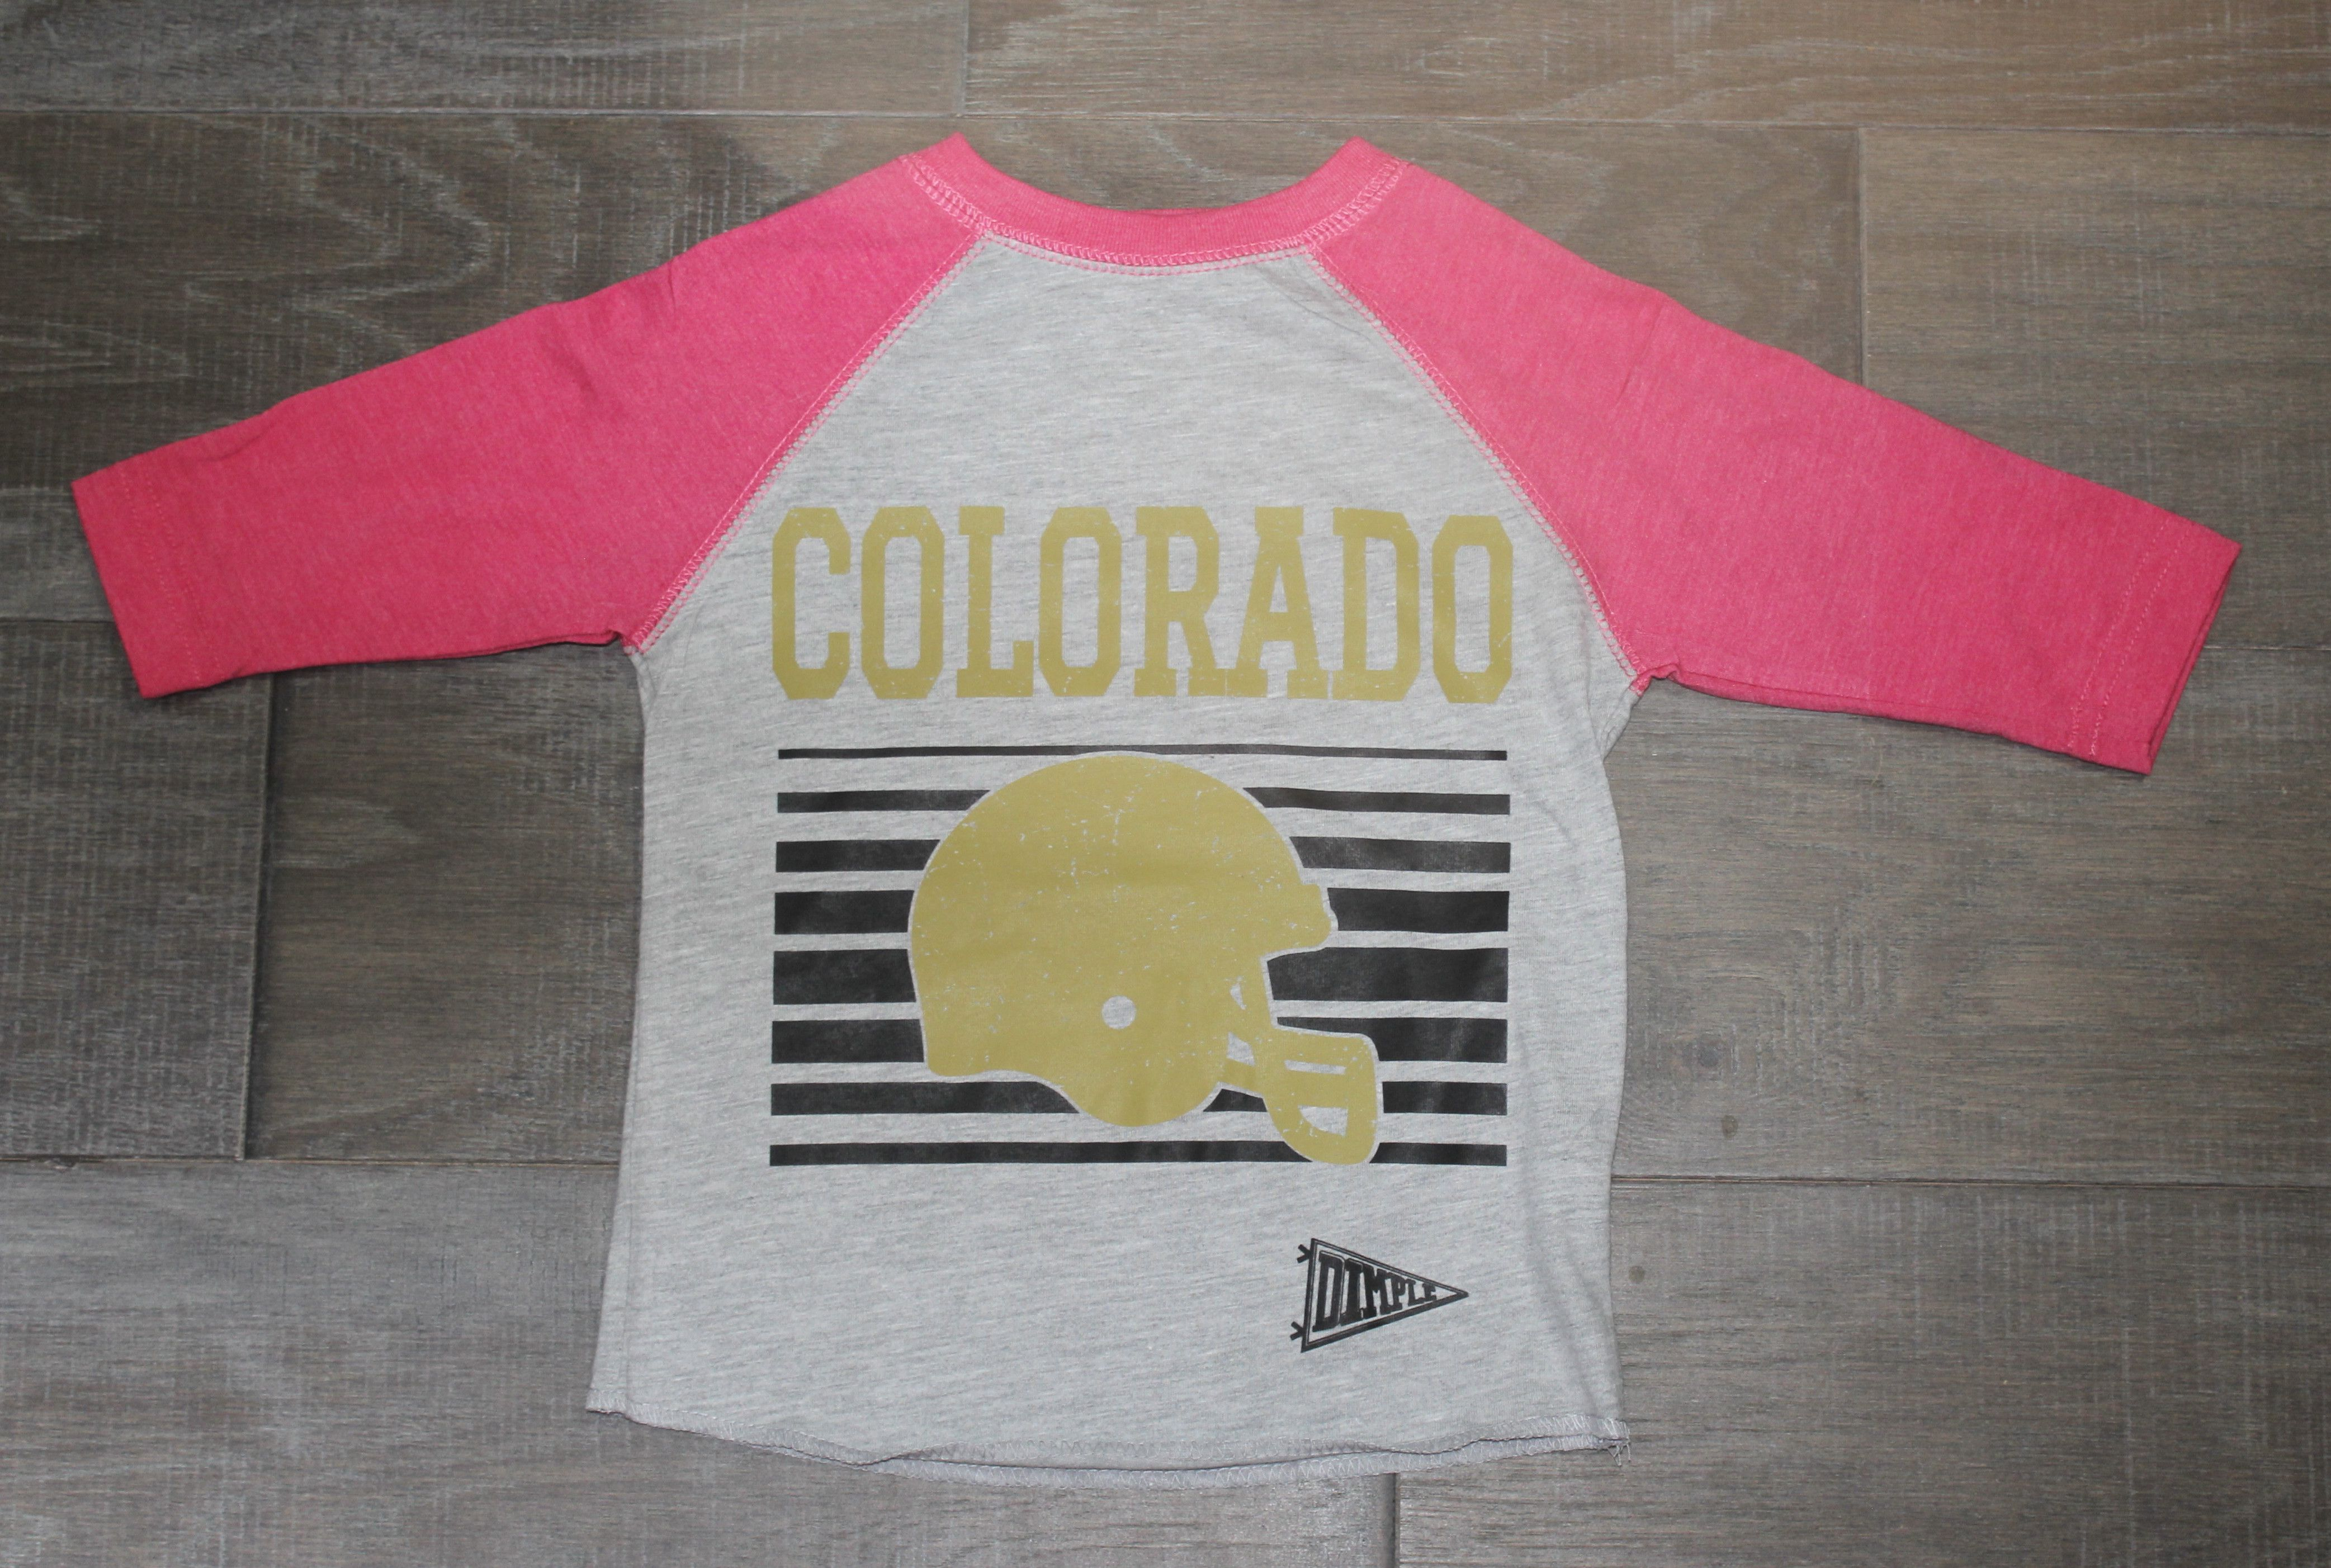 Kids Cu t-shirt for the Colorado Boulder Football team. Go Buffs!